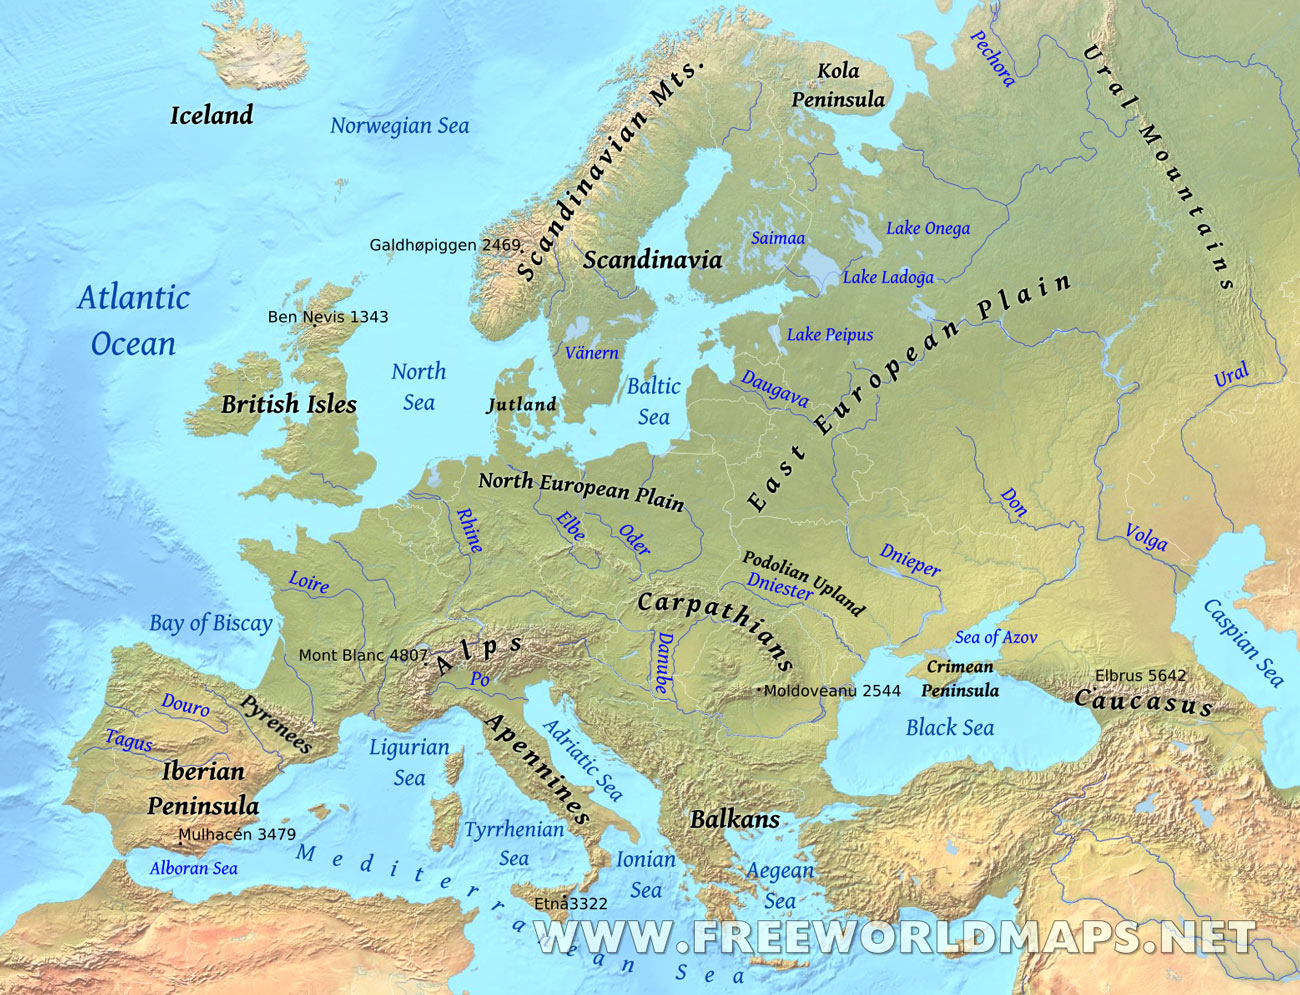 Europe Physical Map Freeworldmapsnet – Geographical Map of Eastern Europe